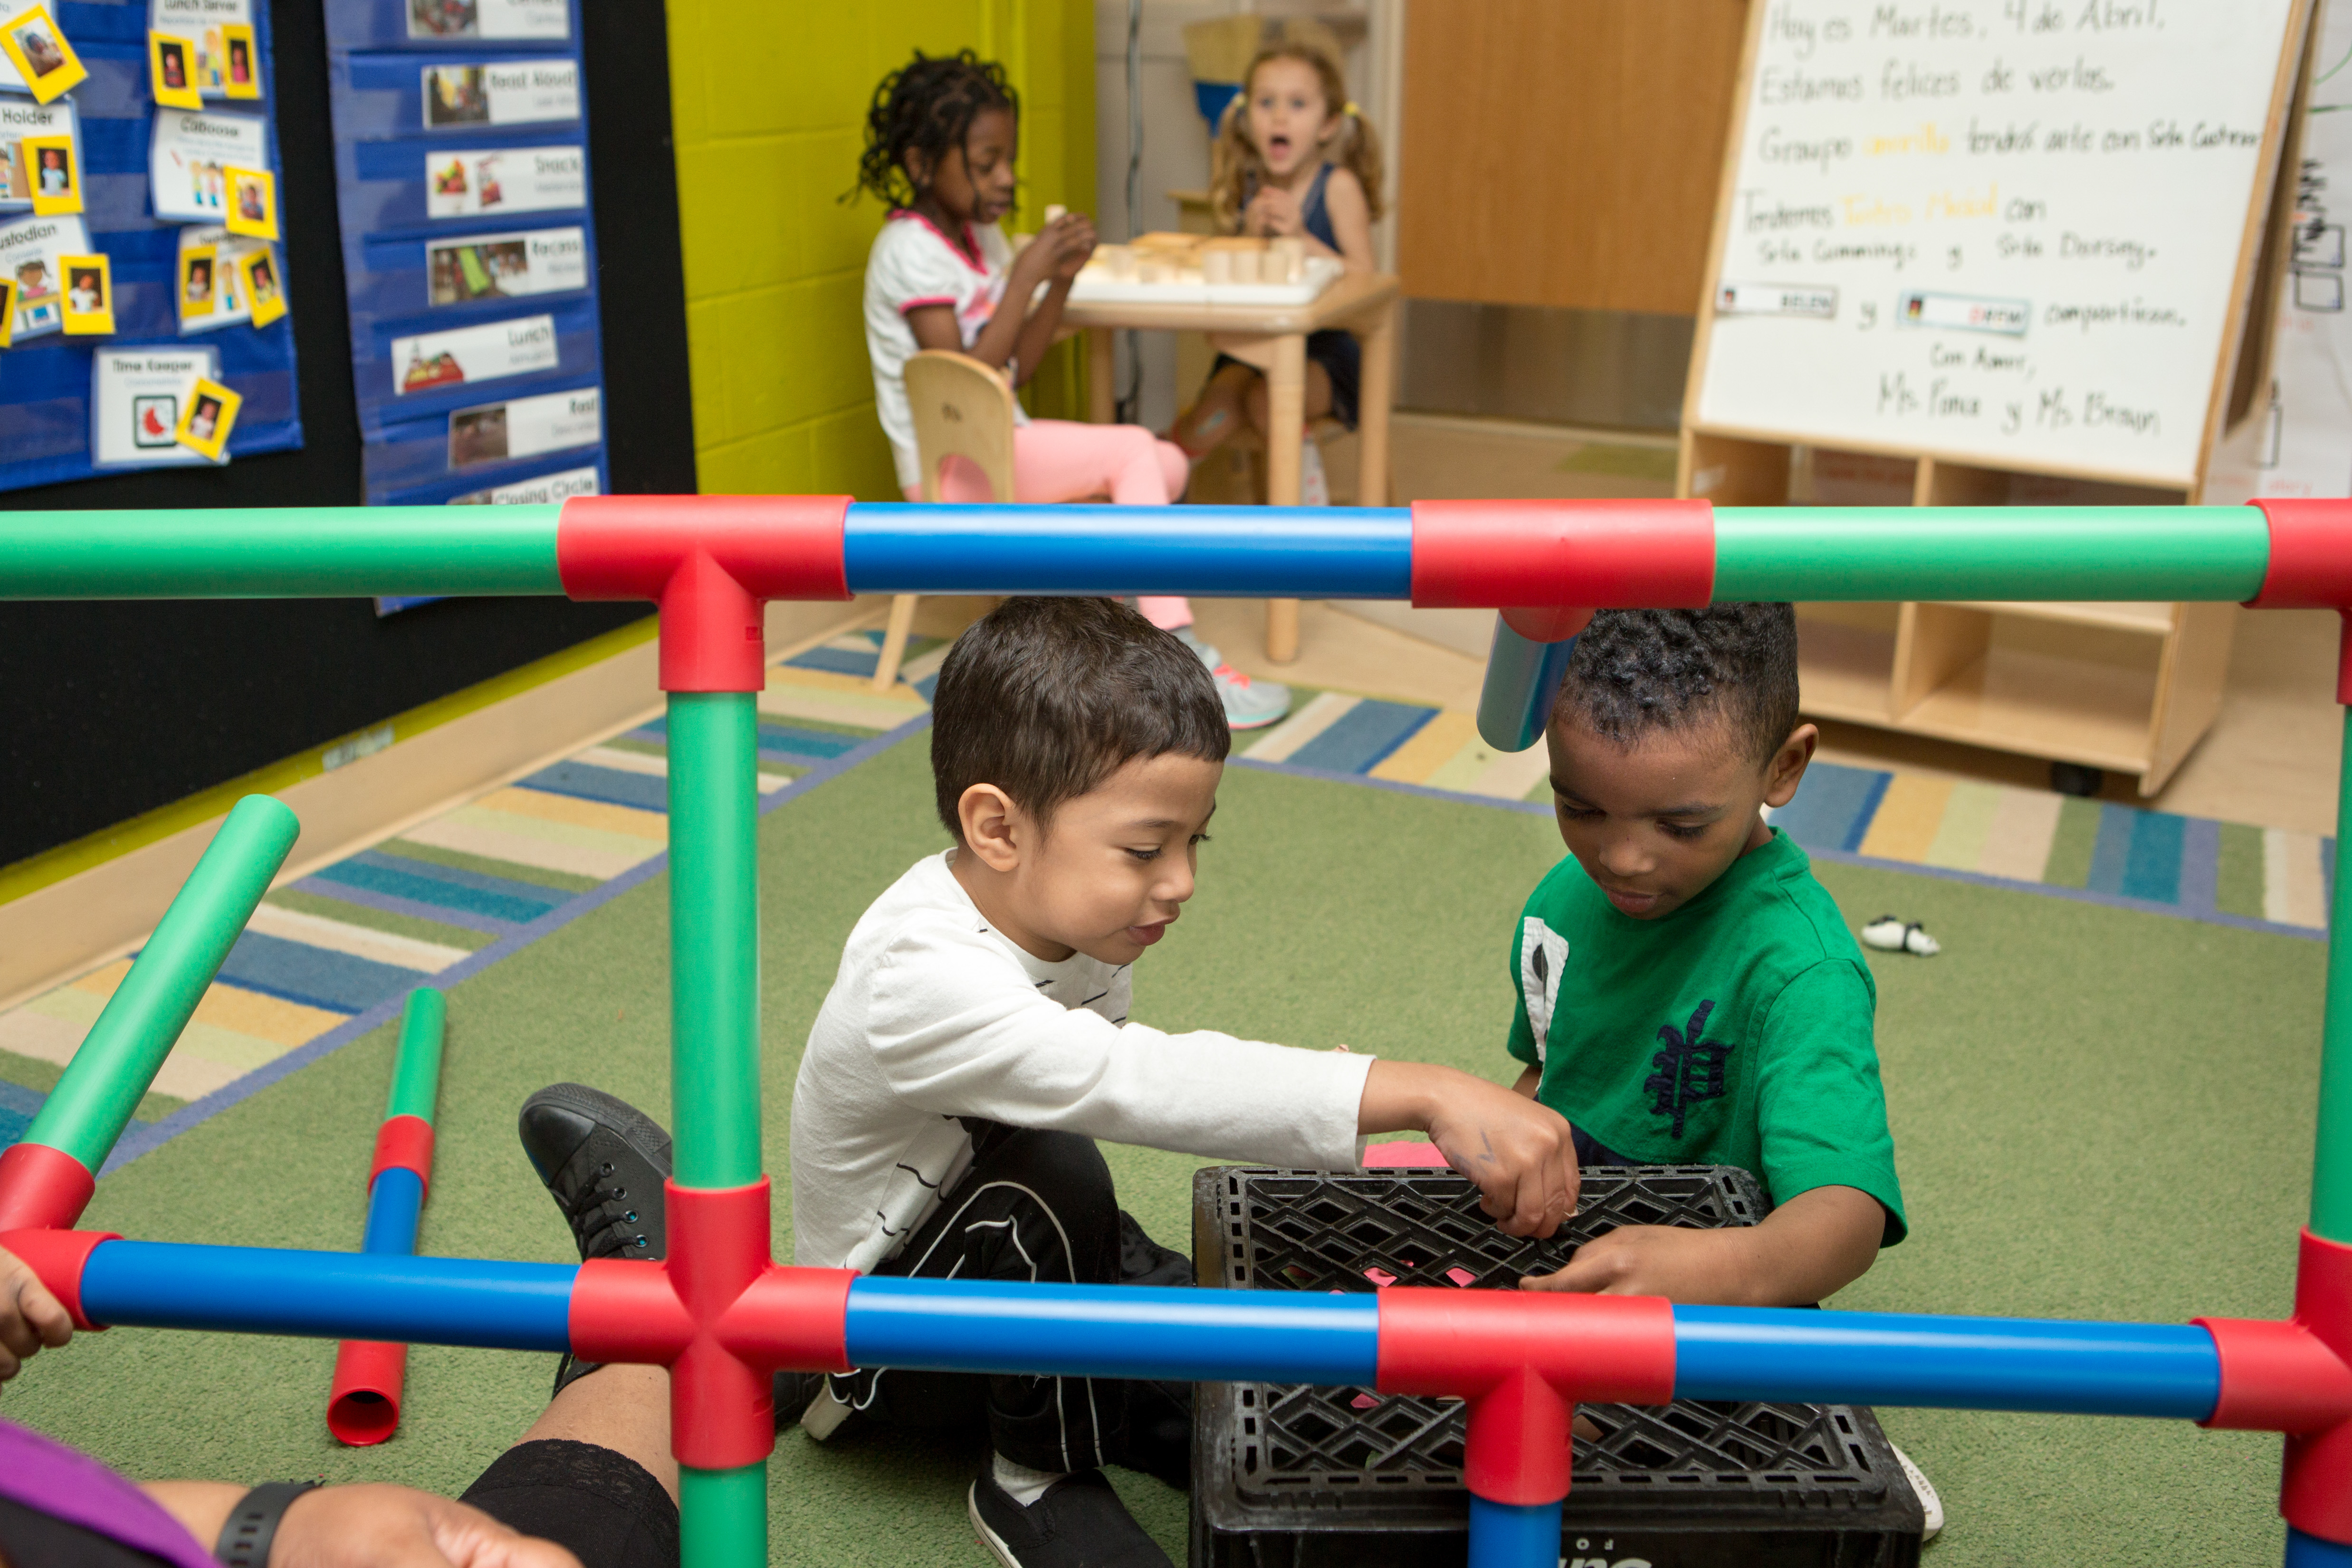 Two preschool boys in the foreground play on a mat in a classroom as two preschool girls sit at a table playing in the background.